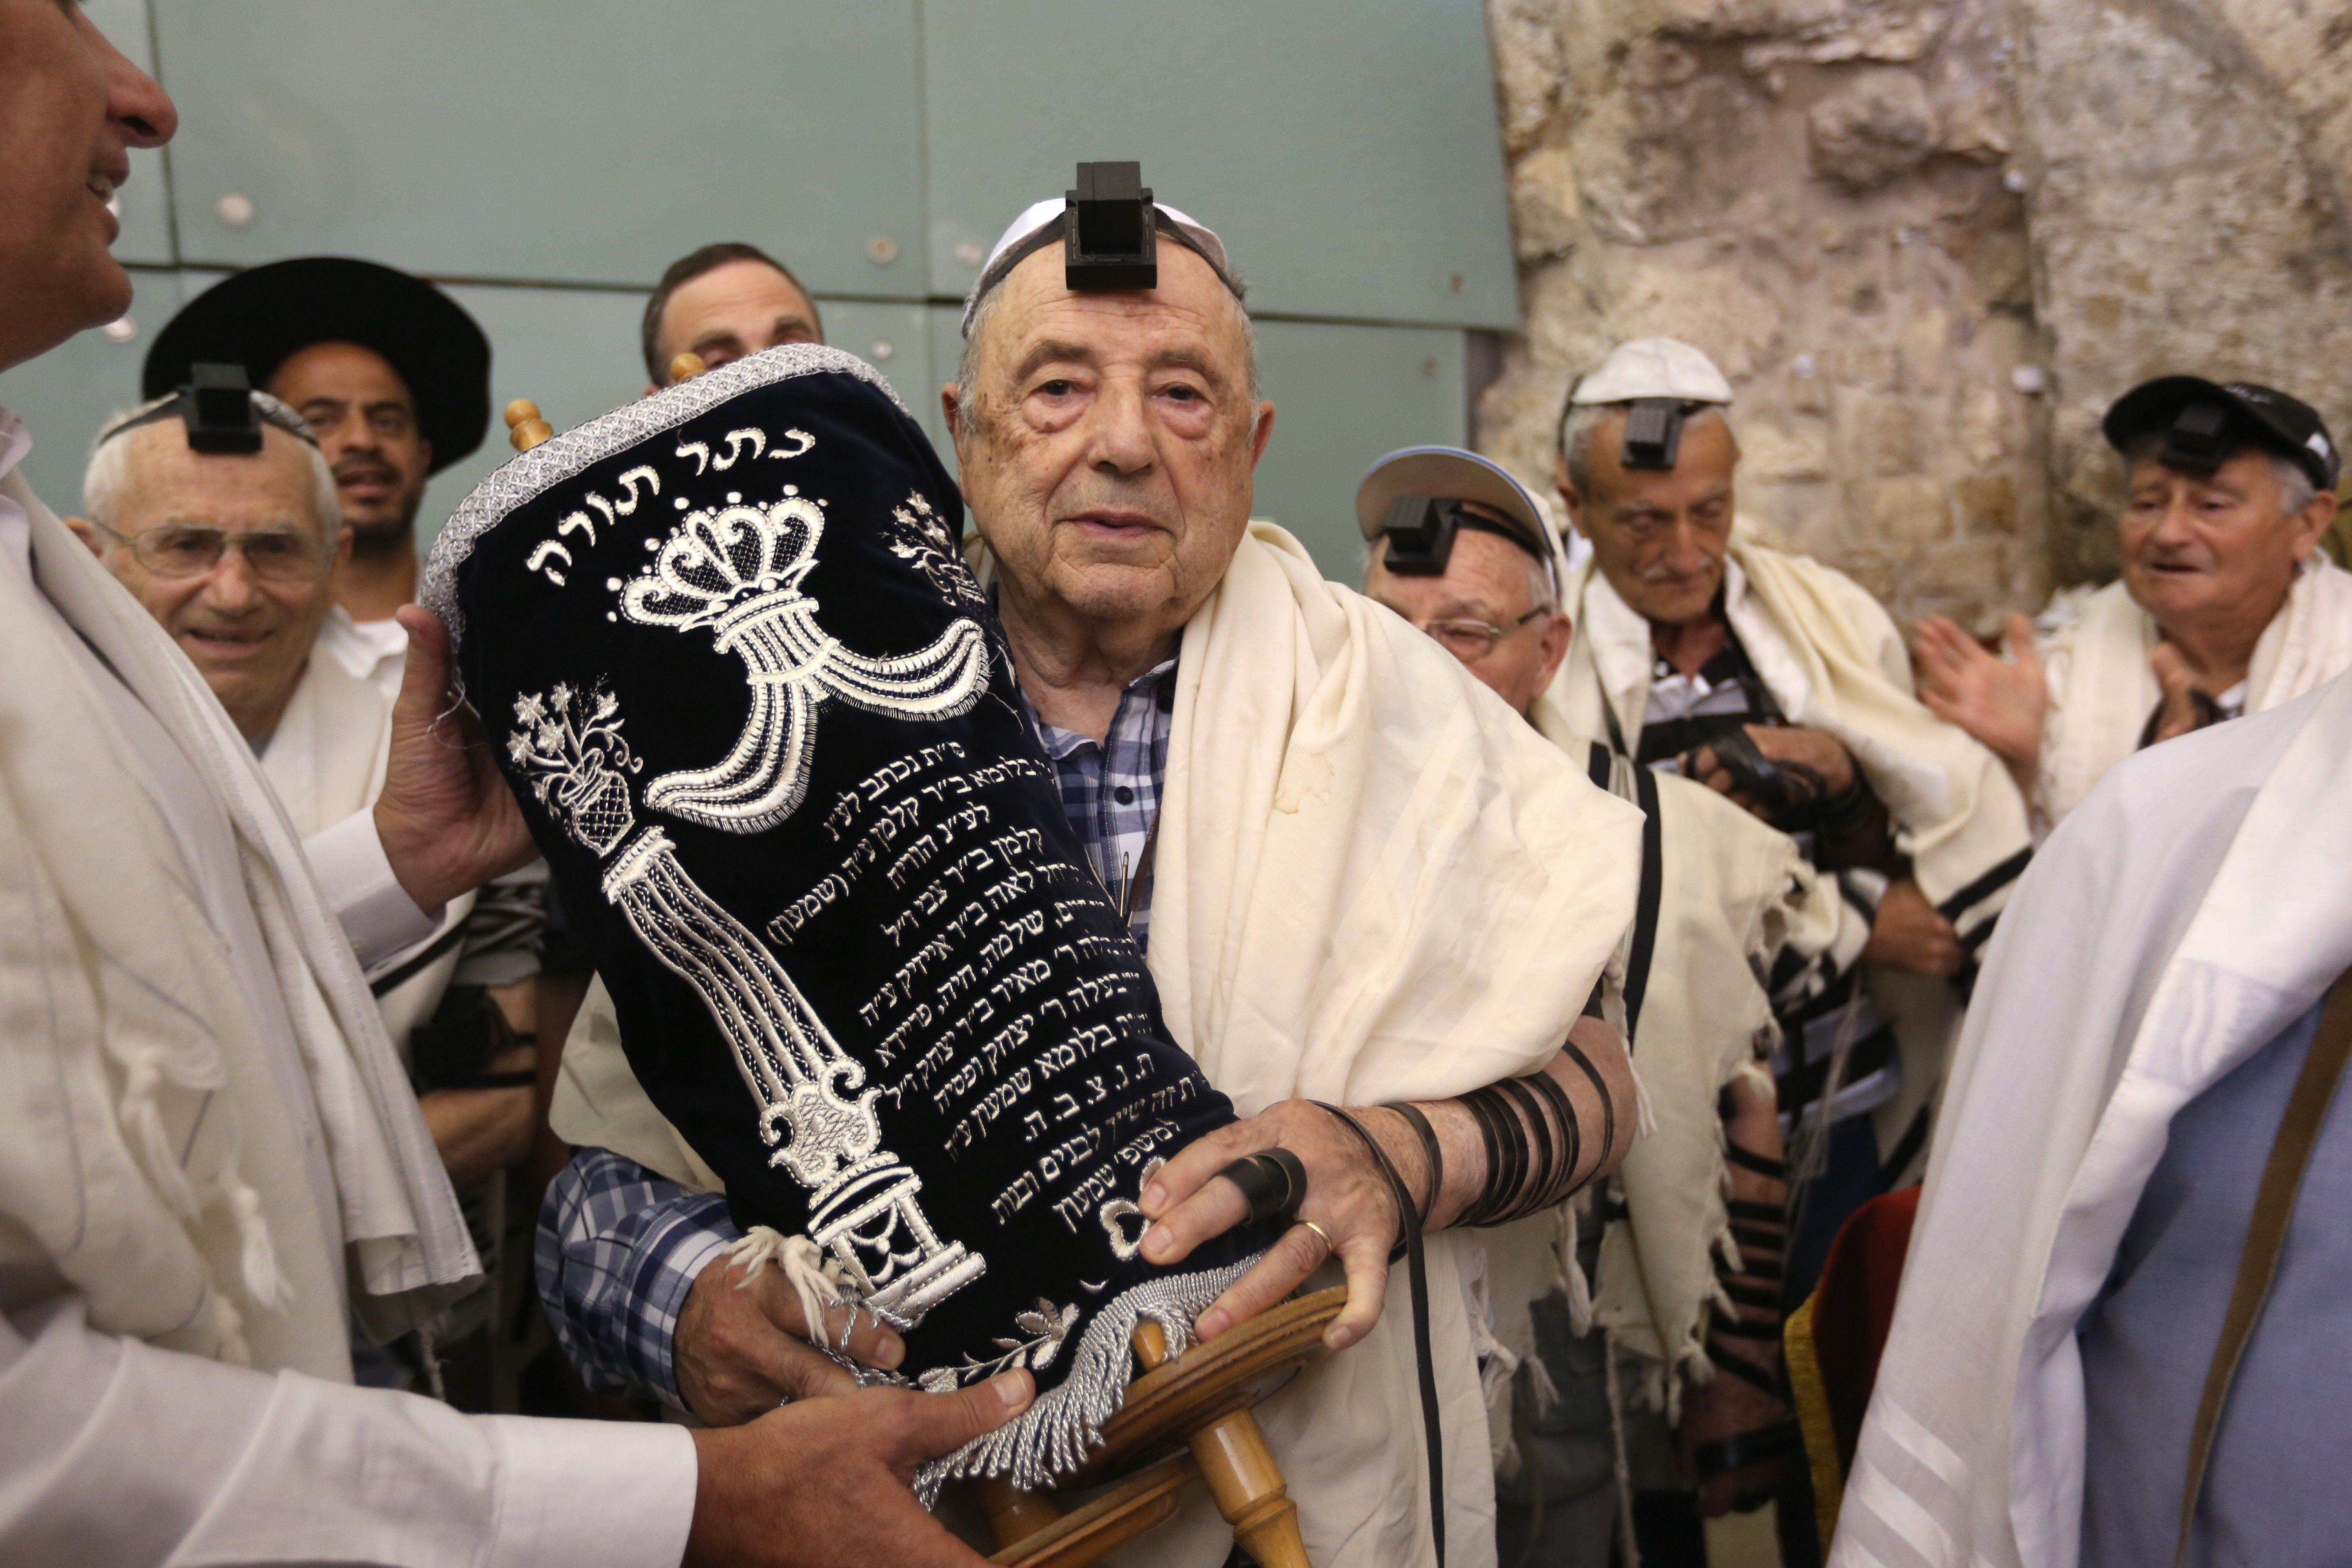 Dozens of Jewish holocaust survivors wear the Tefilin or the Phylacteries and the Tallit prayer shawl as they dance with the Torah after performing their Bar-Mitzvah Jewish ceremony, normally done at the age of 13-years-old, on May 2, 2016, at the Western Wall in the Jerusalem's Old City.  Some 50 male and female holocaust survivors were invited to perform the Jewish Bar-Mitzvah ceremony some 70 years after World War II. / AFP / MENAHEM KAHANA        (Photo credit should read MENAHEM KAHANA/AFP/Getty Images)